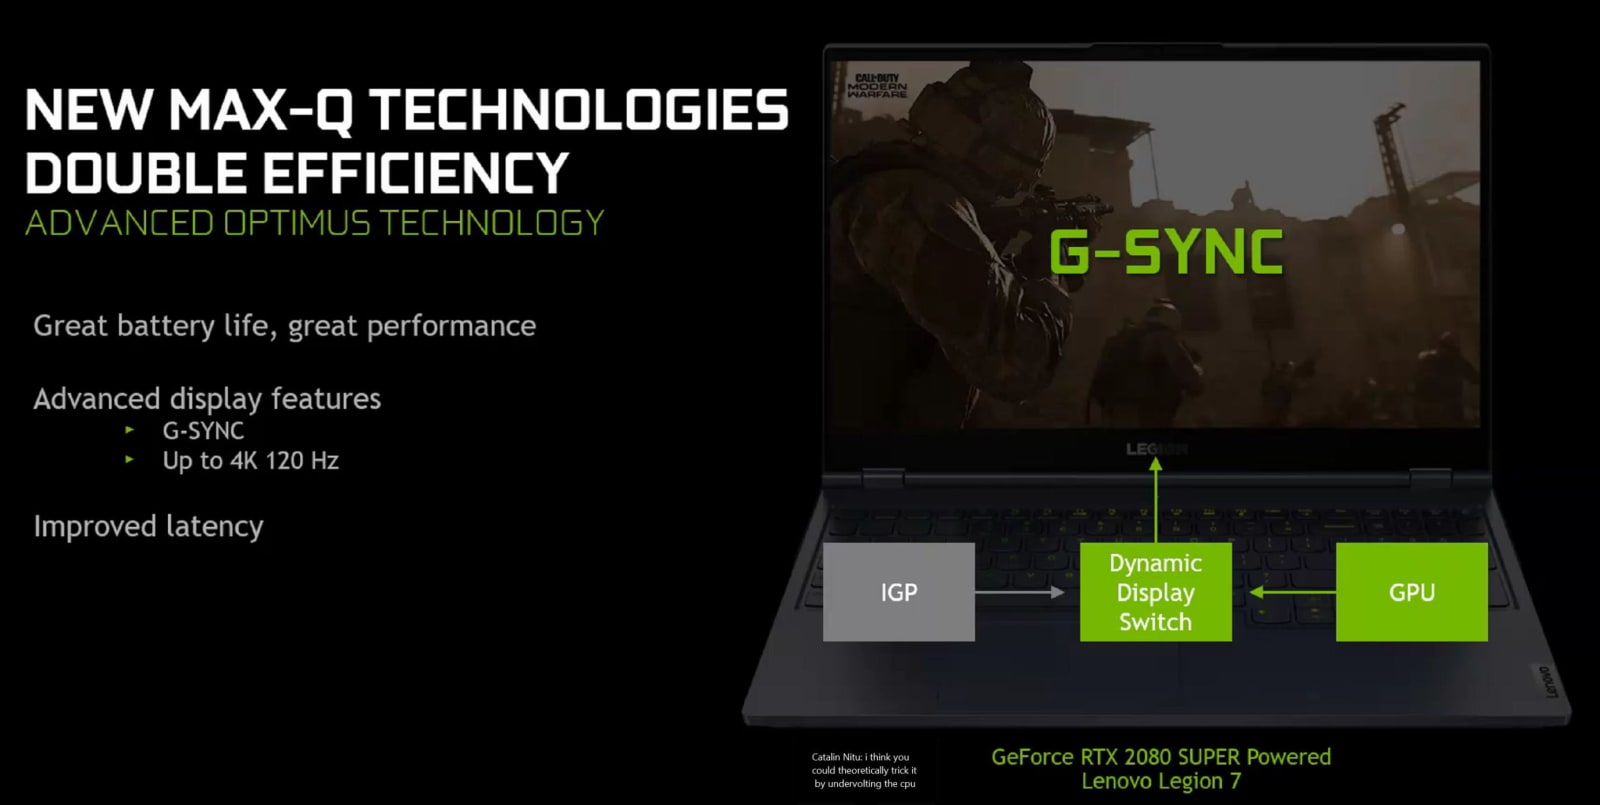 NVIDIA advanced optimus technology